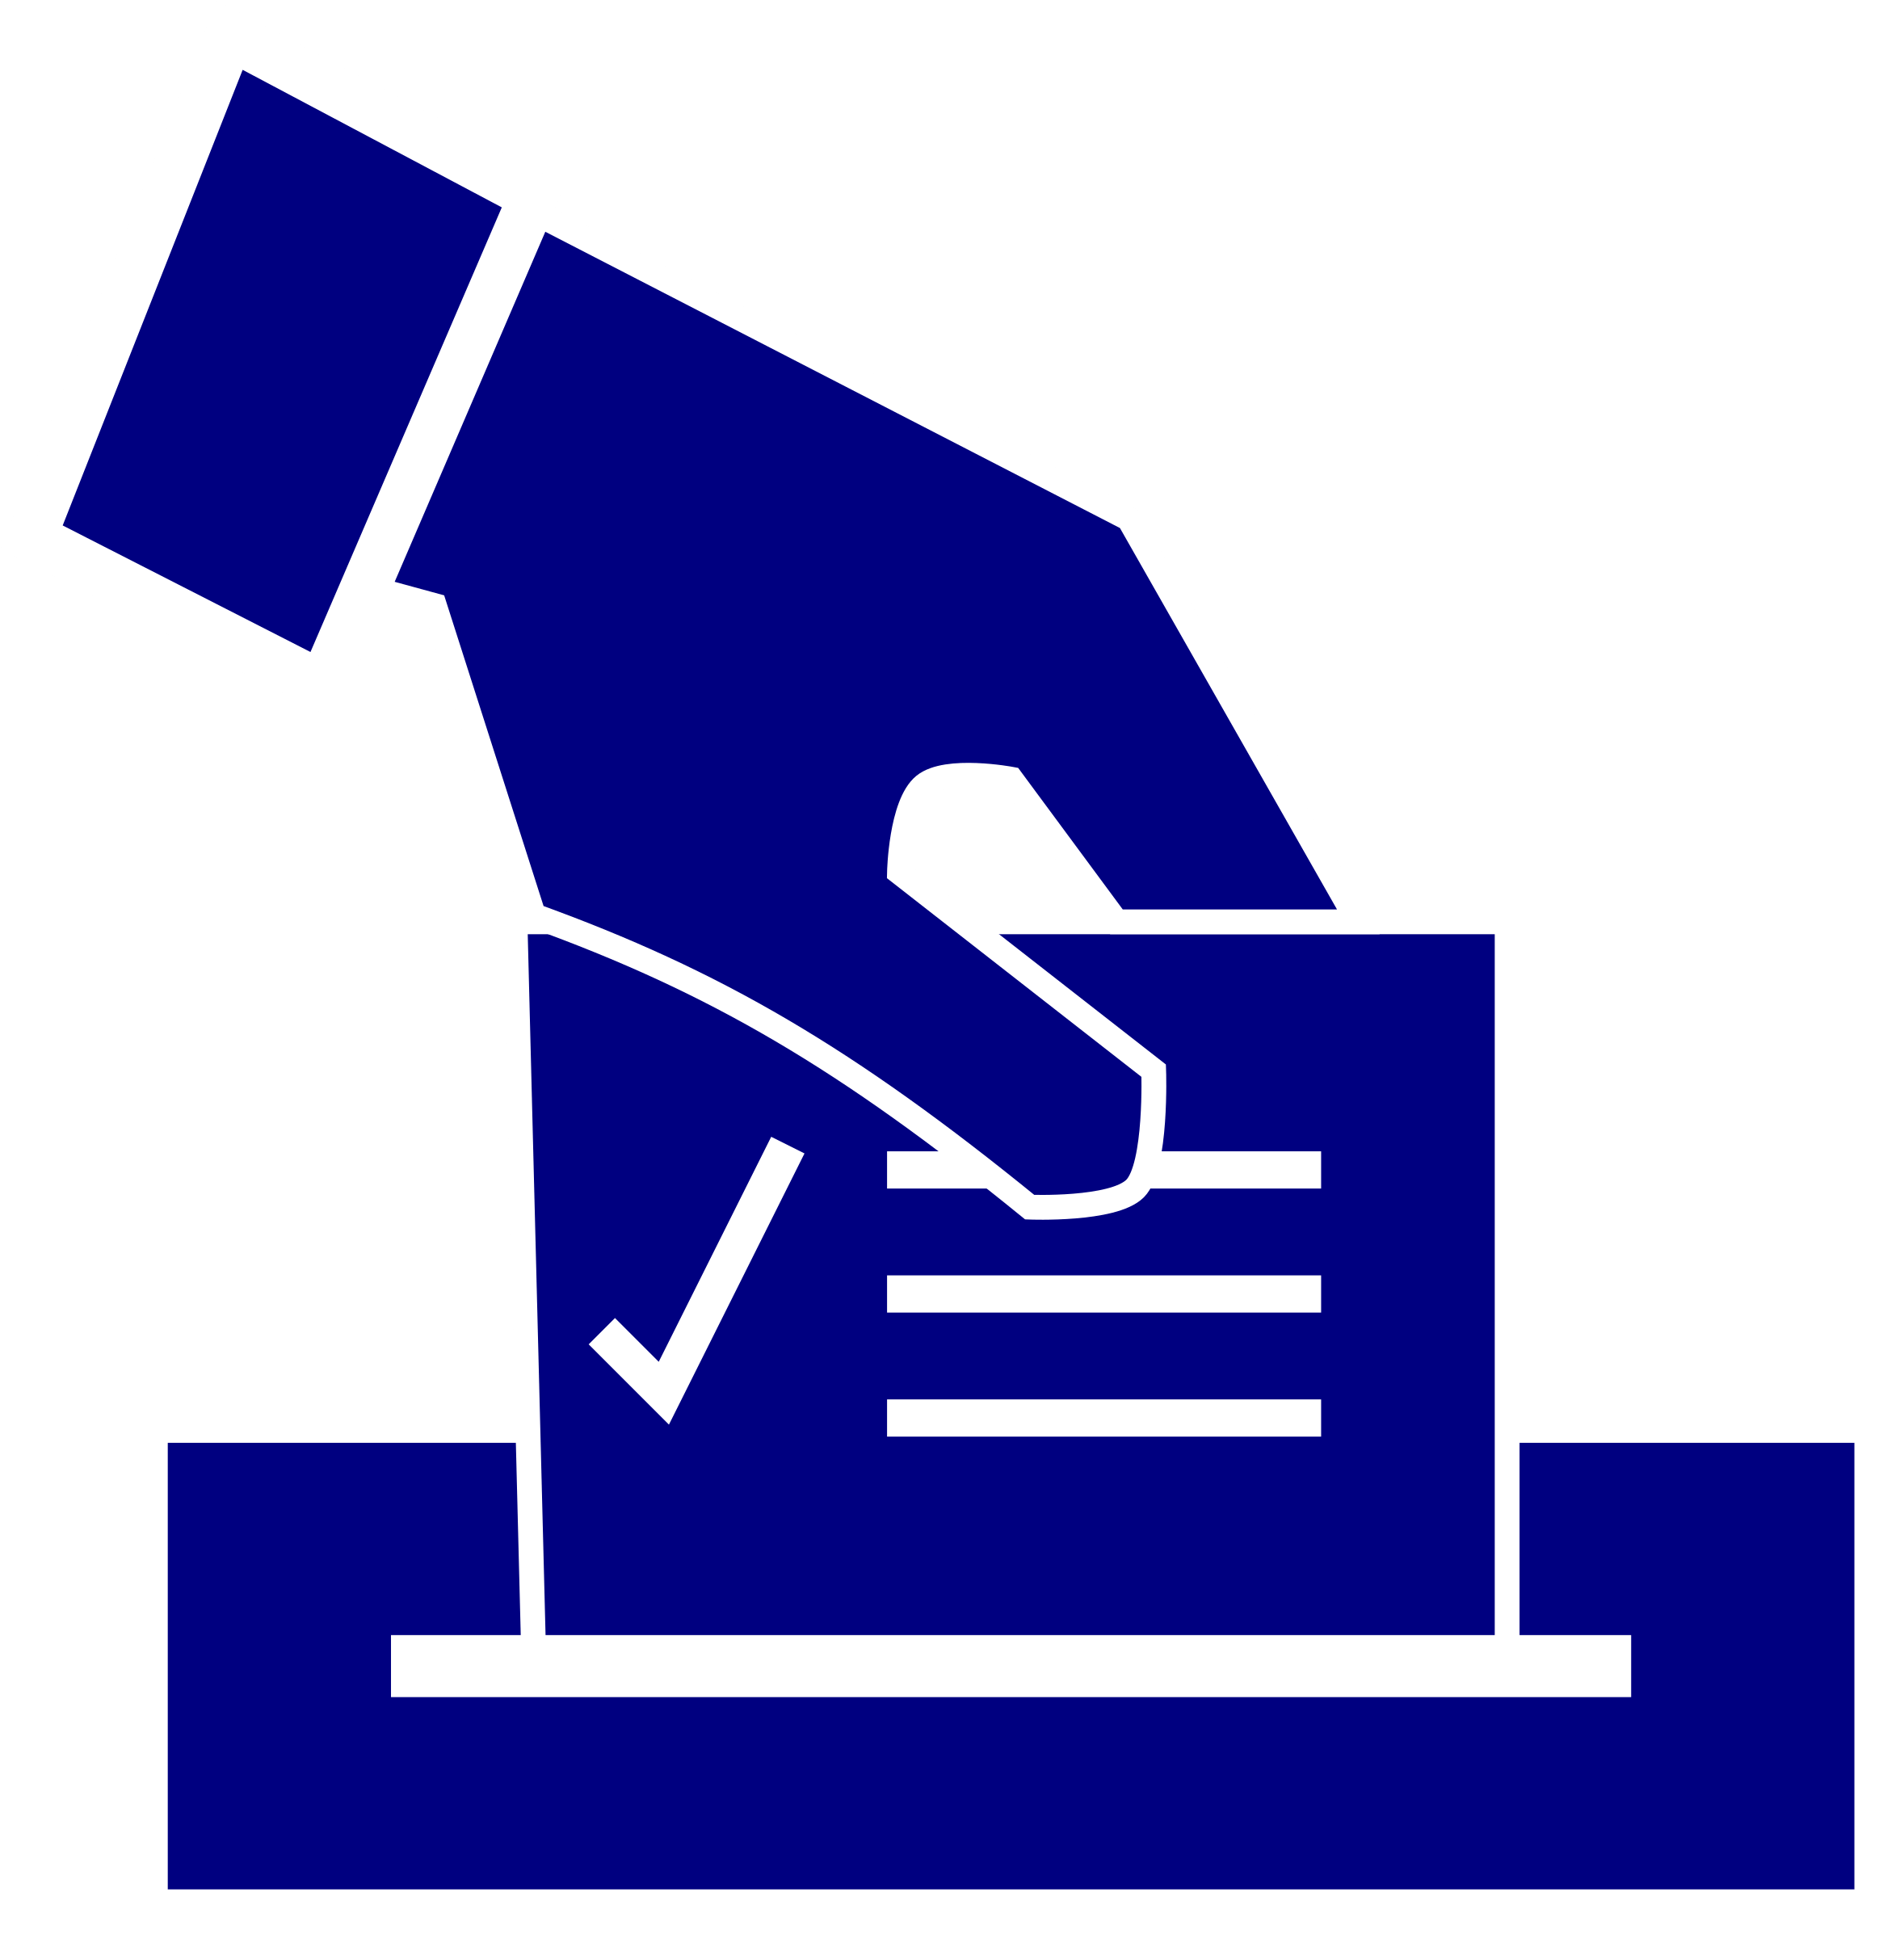 Vote ballot clipart transparent. Illuminati .png image download